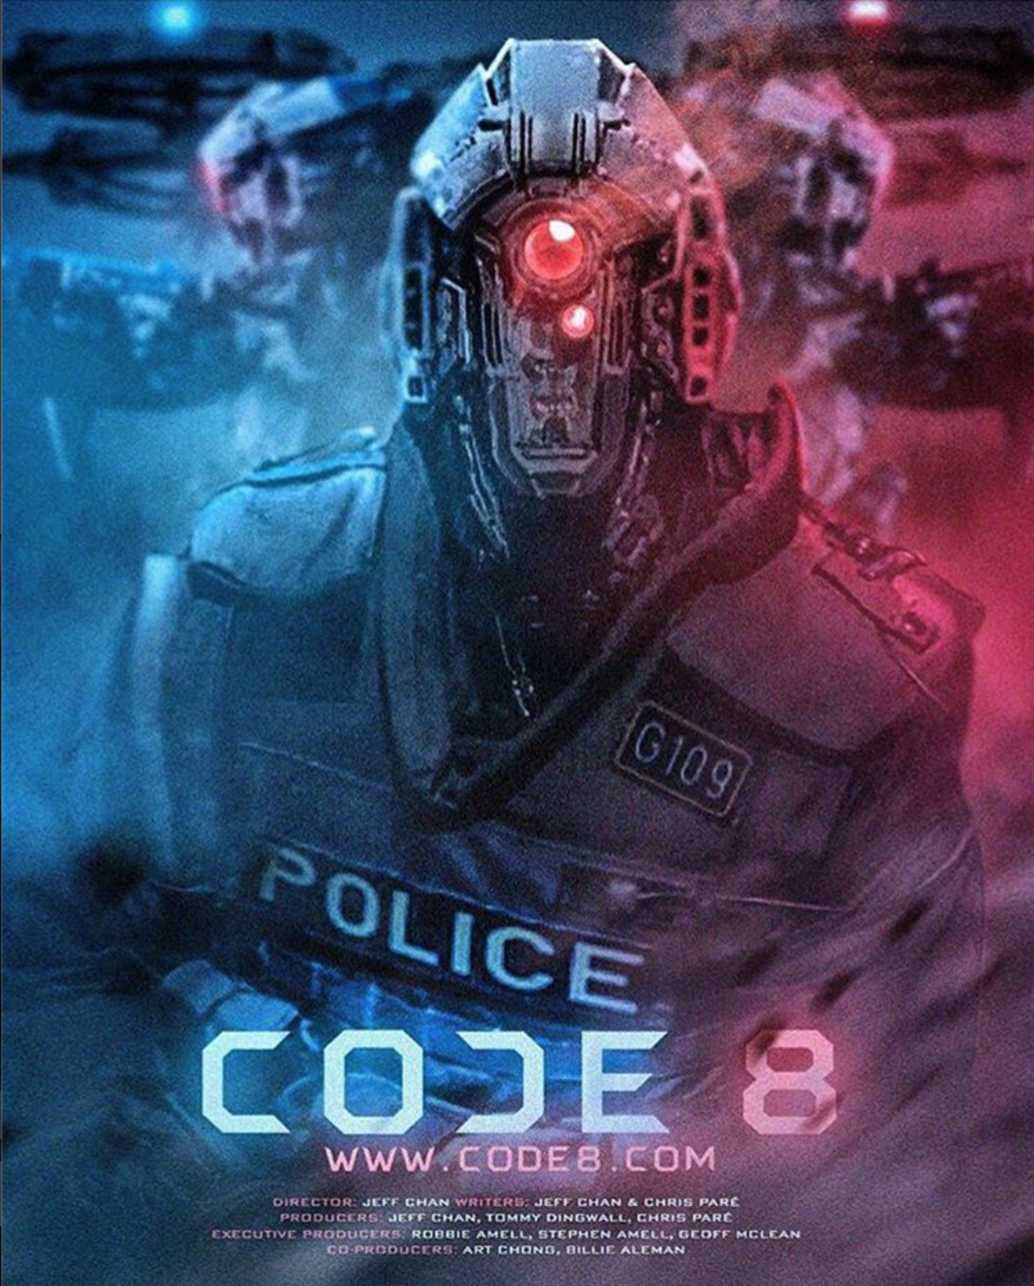 Image result for code 8 poster""